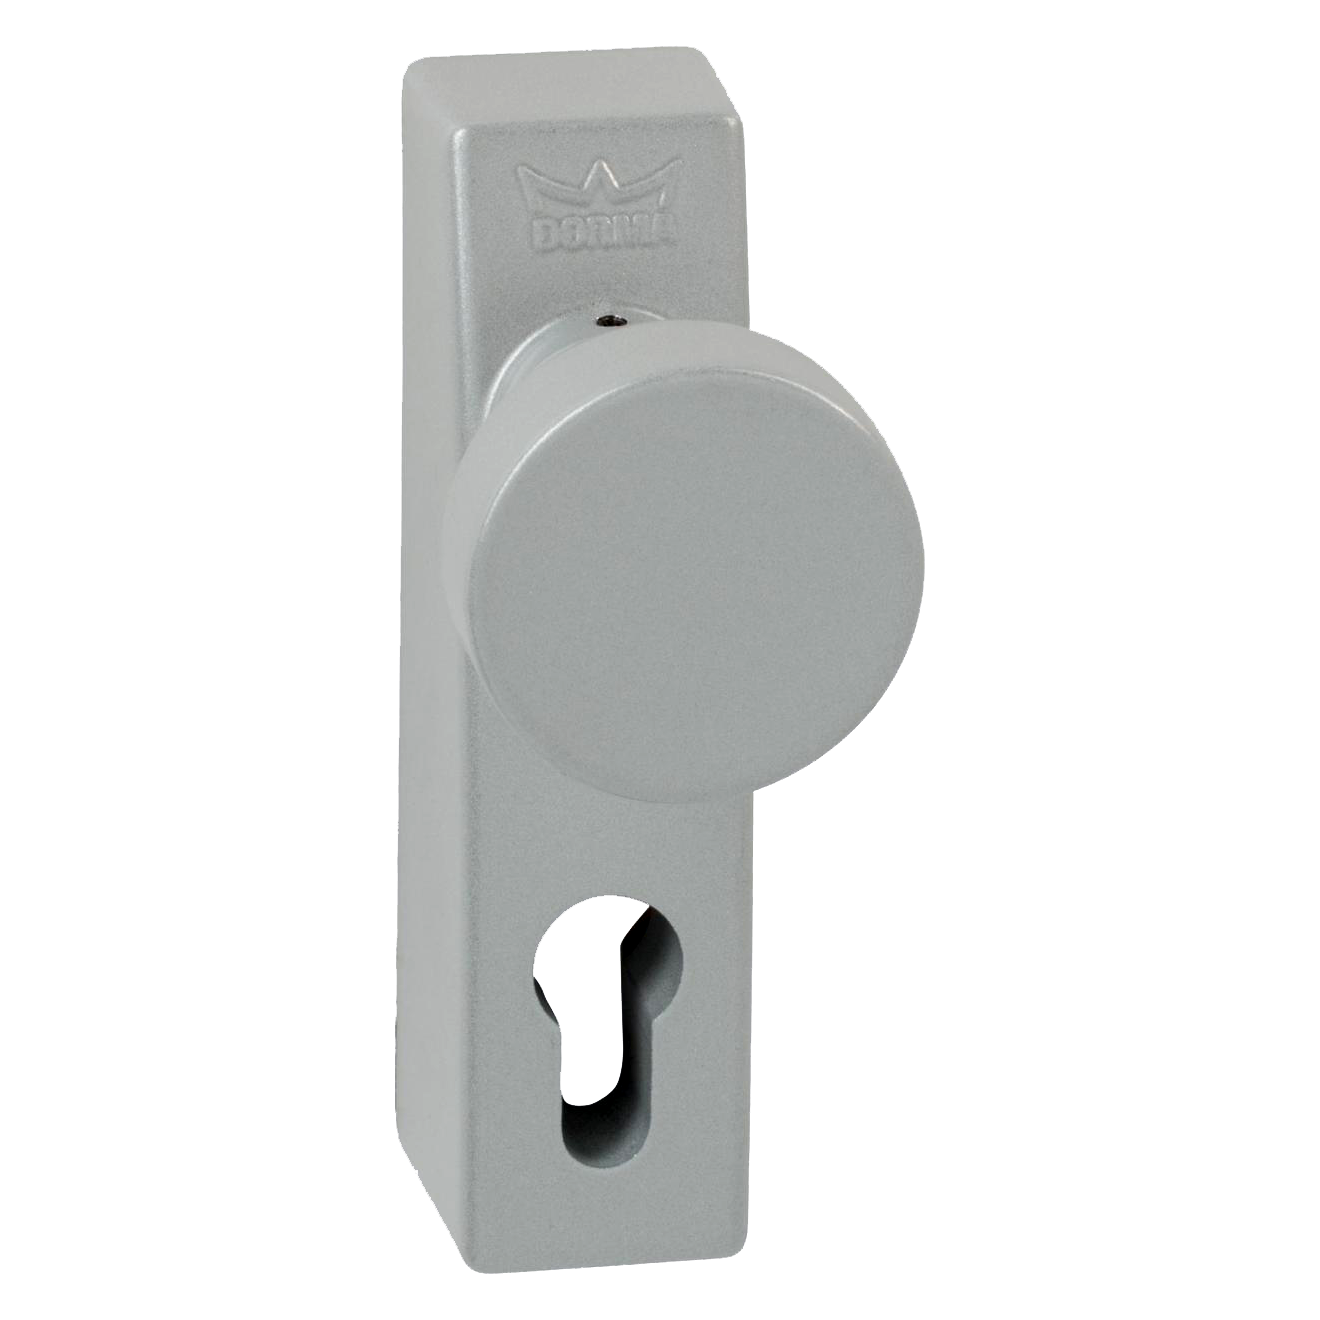 Picture of DORMAKABA PHT 06 Knob Operated Outside Access Device